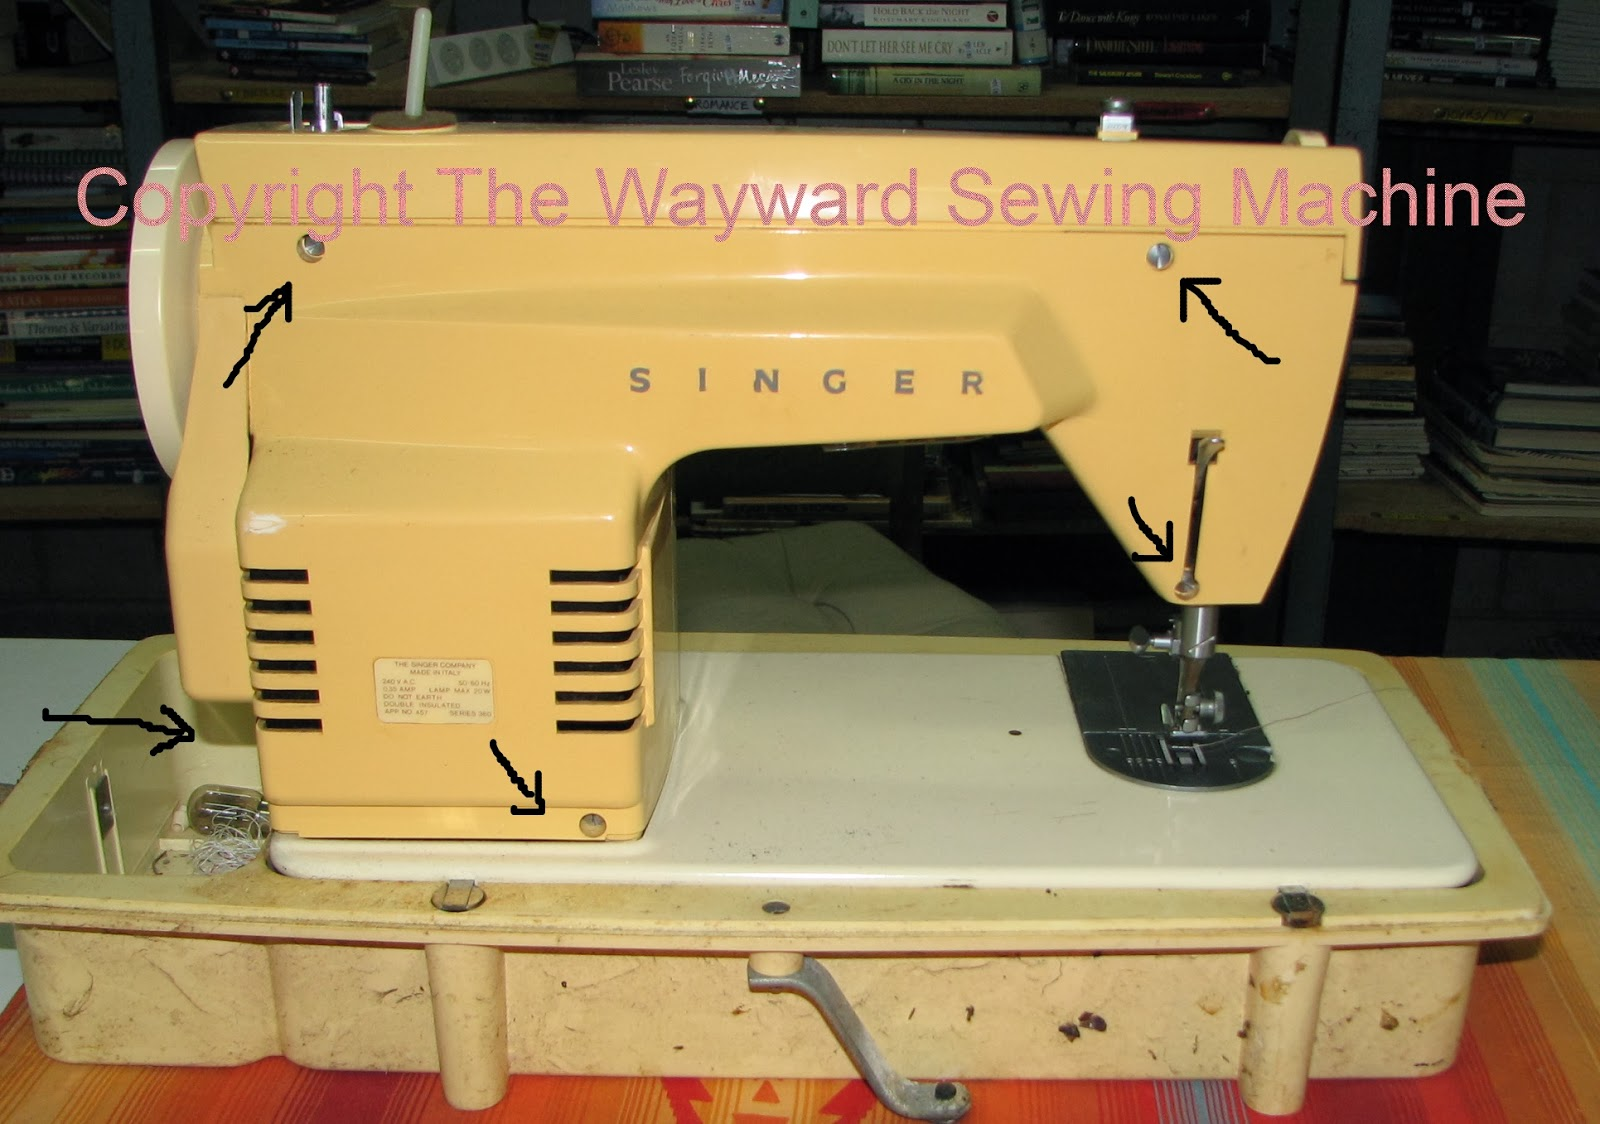 The Wayward Sewing Machine Singer Fashion Mate 362 Thread A Diagram Labeled To Take Back Off Remove Screws Marked In Tip Up And Metal Light Bulb Cover It Will Only Get Way